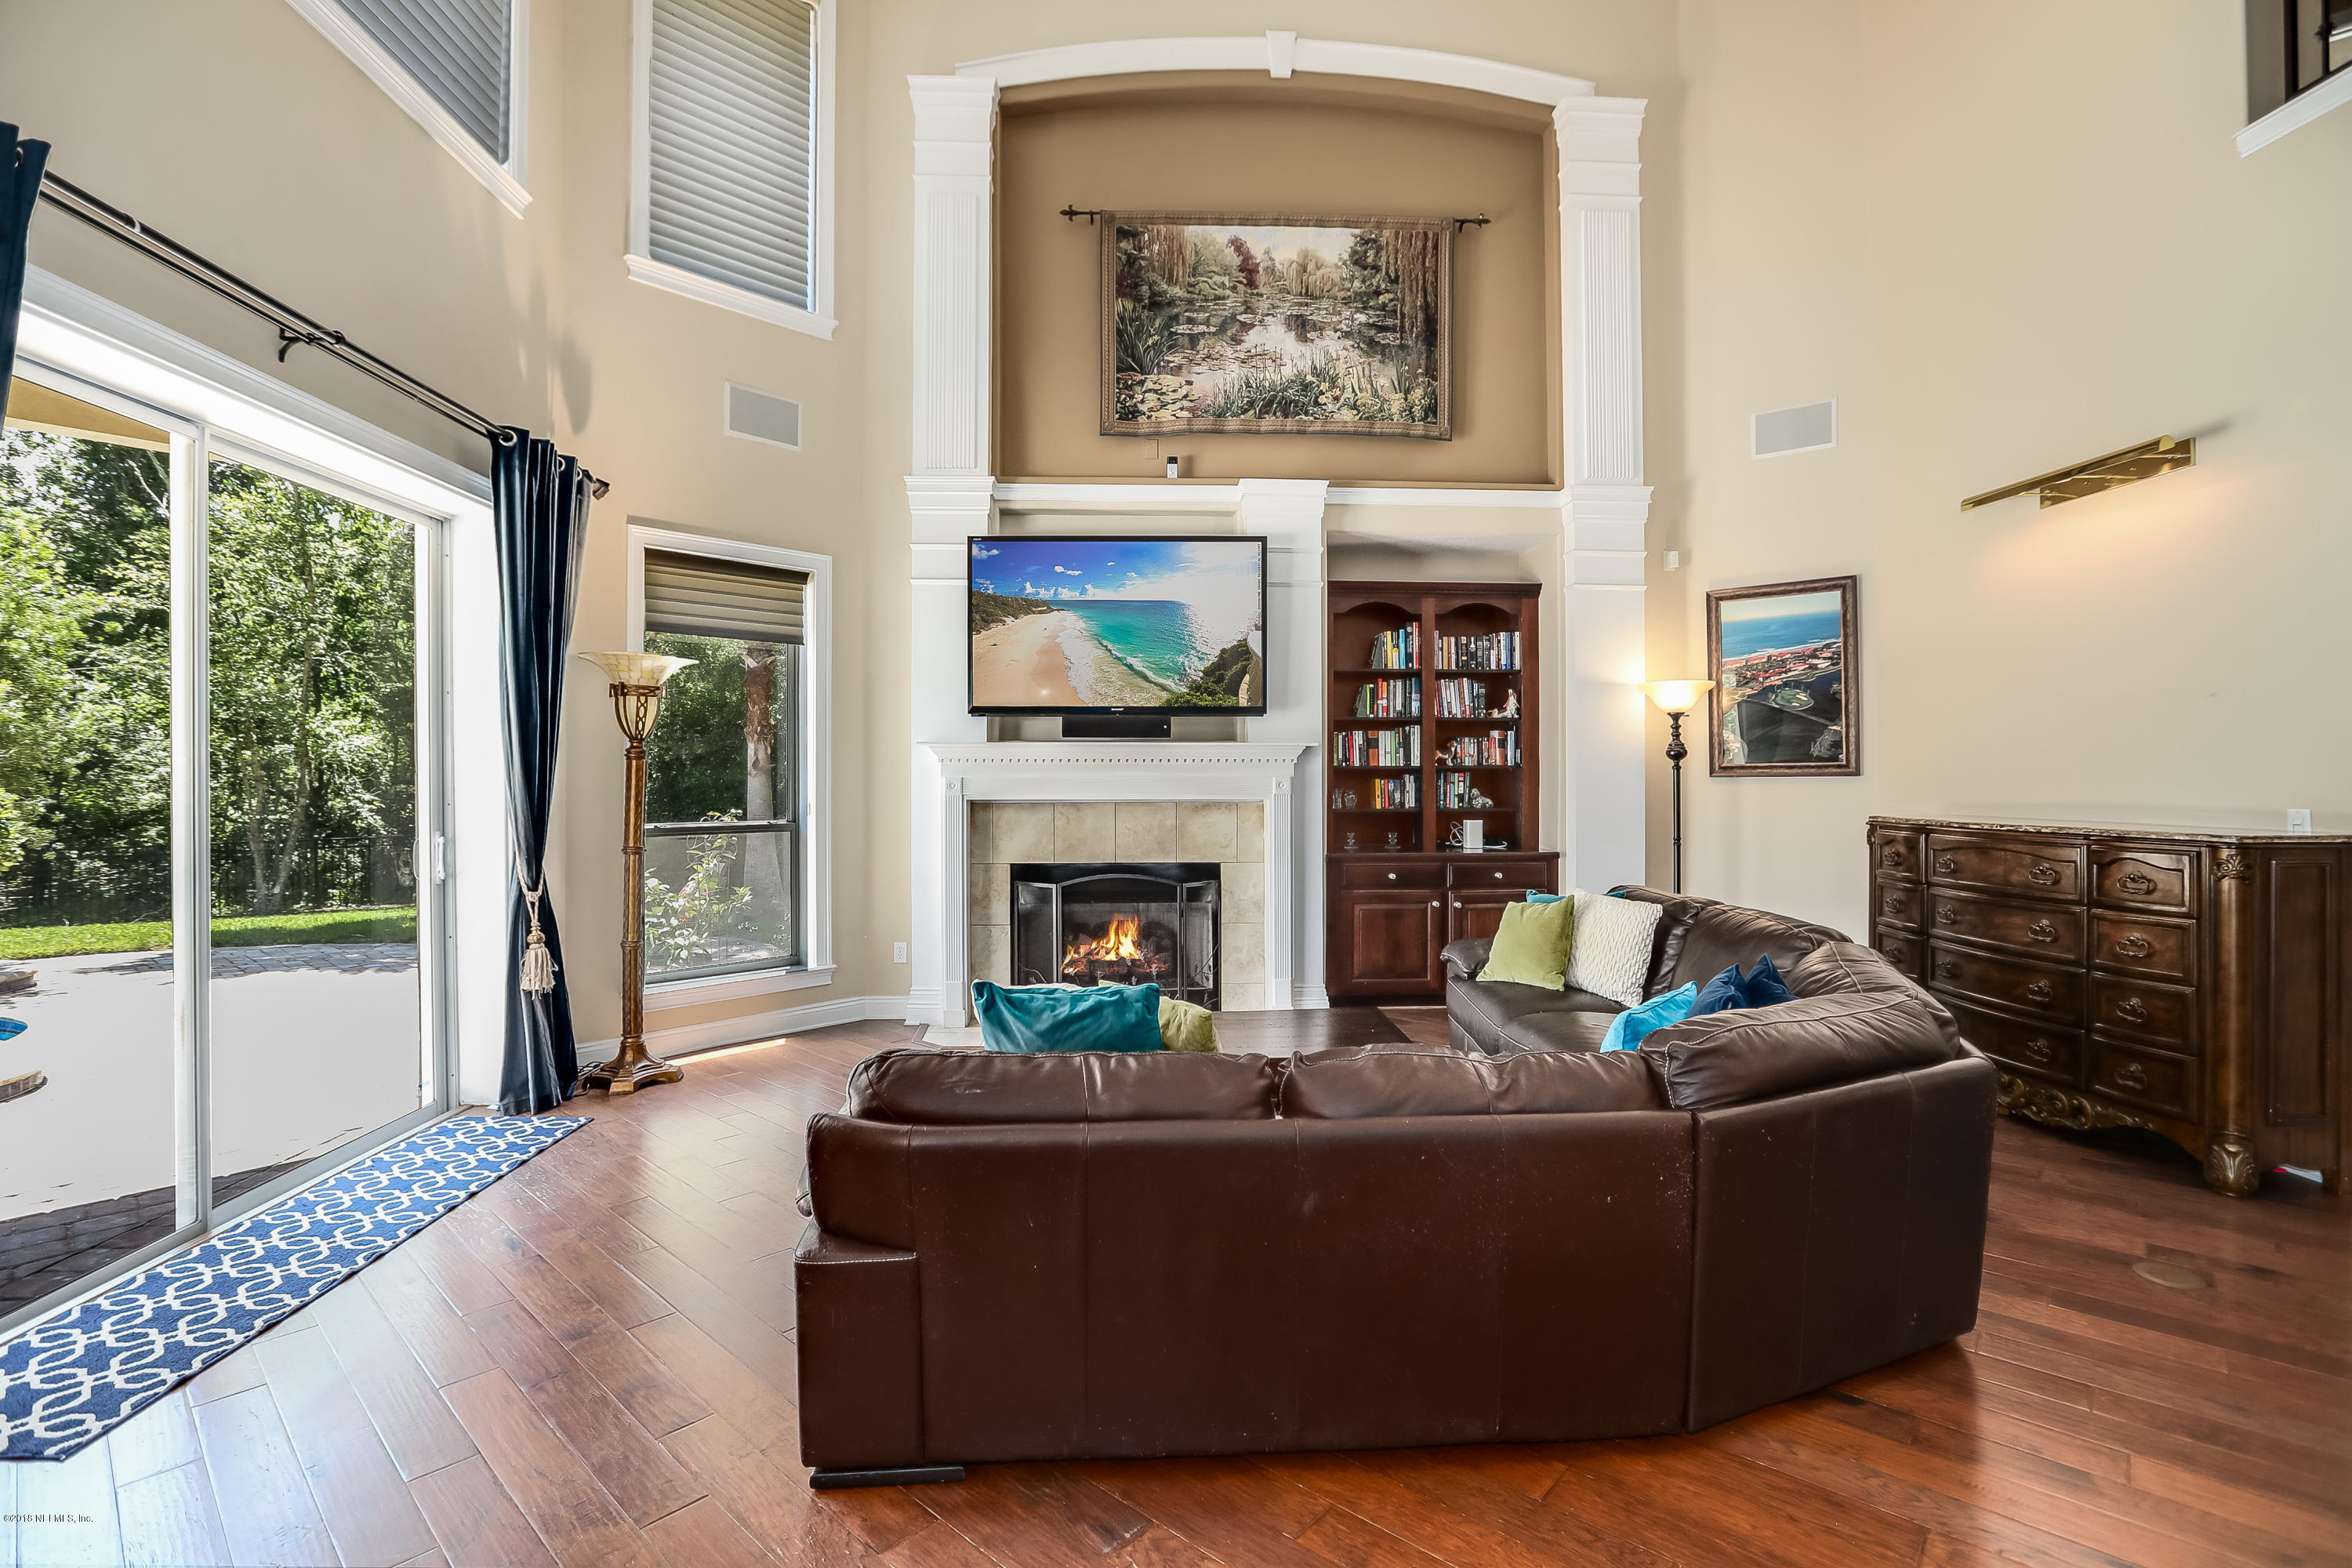 125 KING SAGO CT PONTE VEDRA BEACH - 11